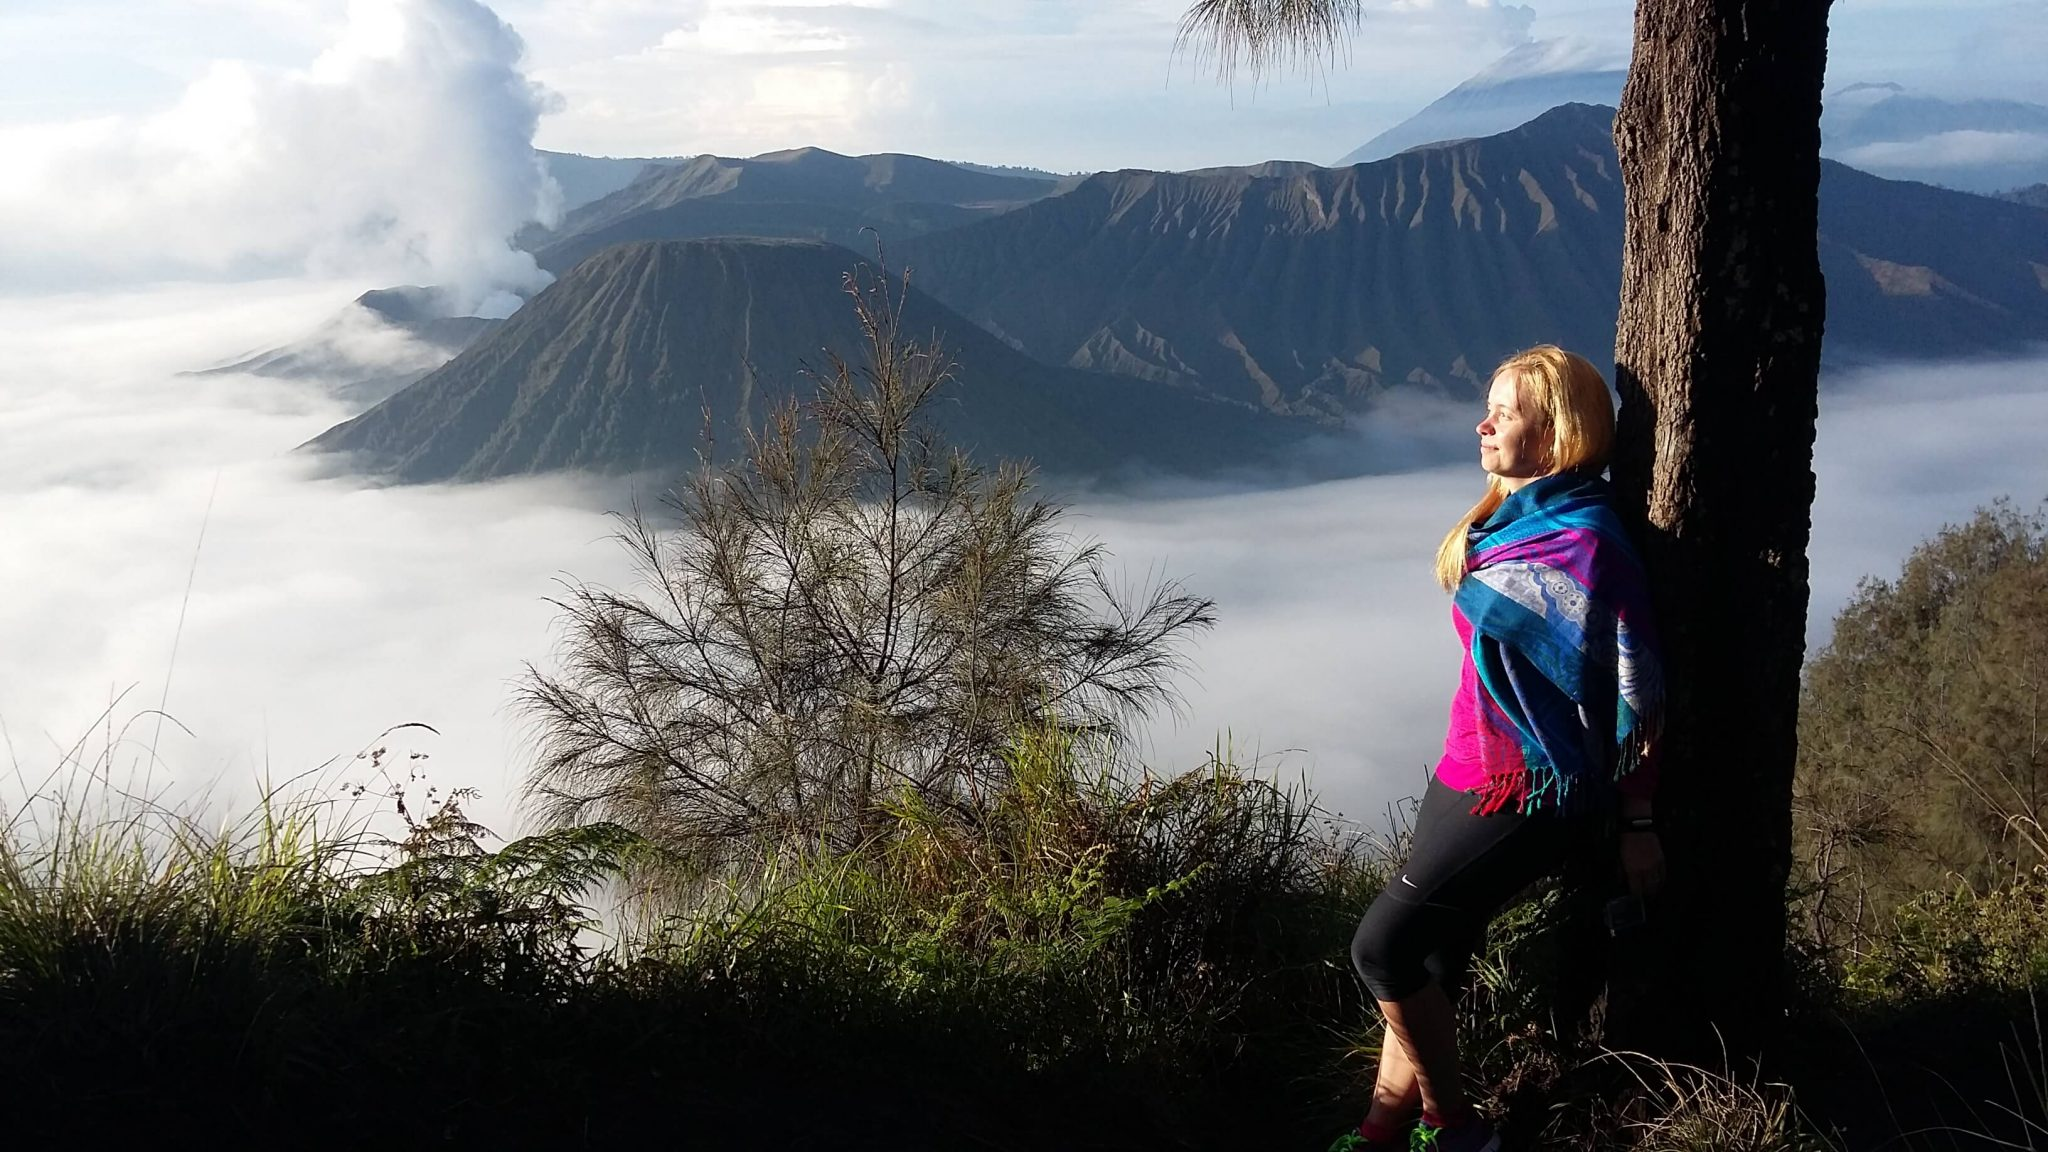 Sunrise in Bromo Tengger Semeru National